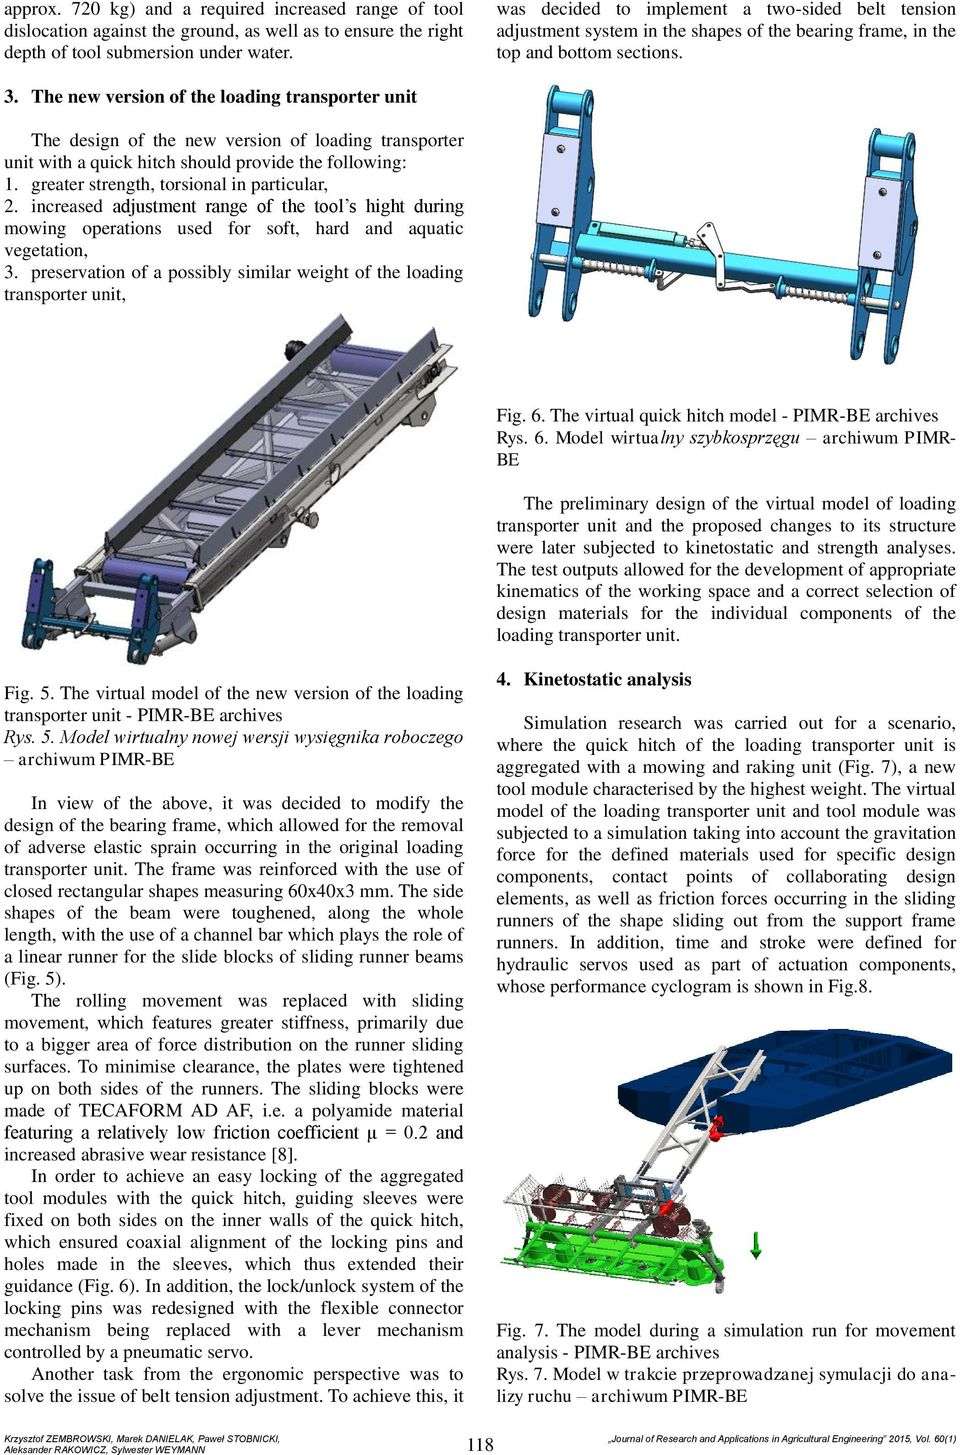 The new version of the loading transporter unit The design of the new version of loading transporter unit with a quick hitch should provide the following: 1.